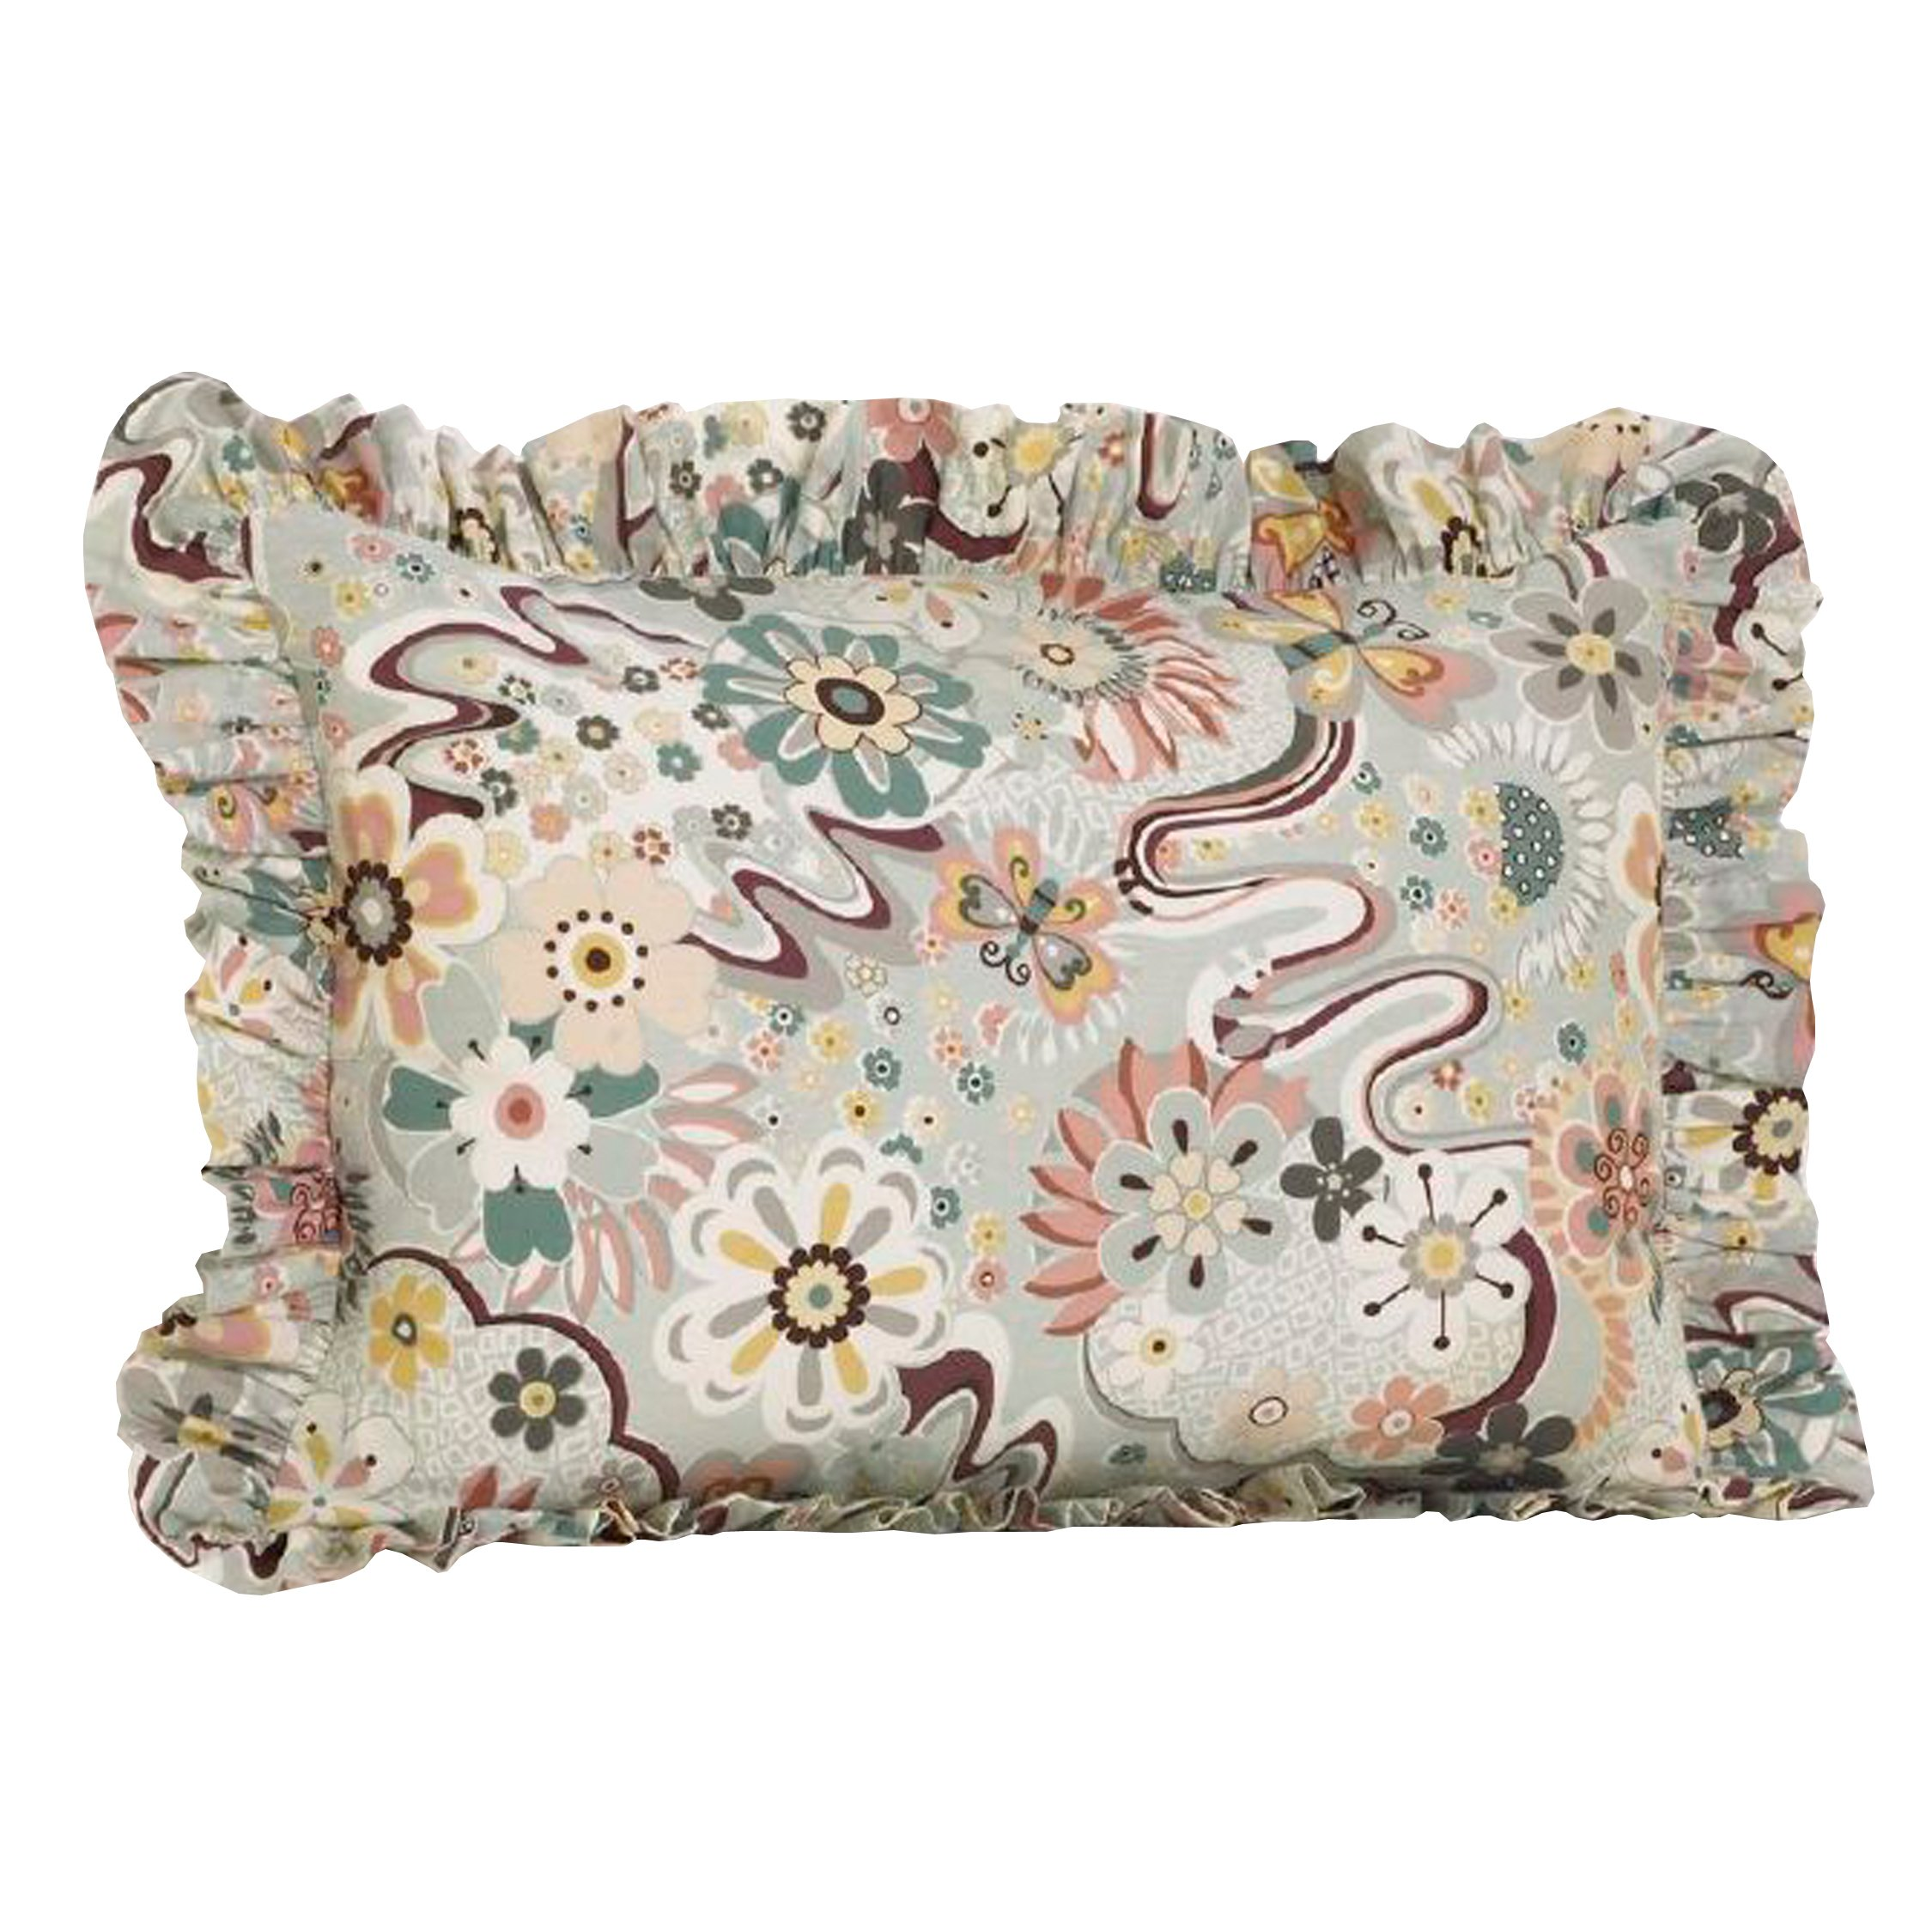 Cotton Tale Designs 100% Cotton Fun Multi Colored Retro Floral & Butterflies Penny Lane Standard Ruffled Pillow Sham - Girl - Pillow Cover